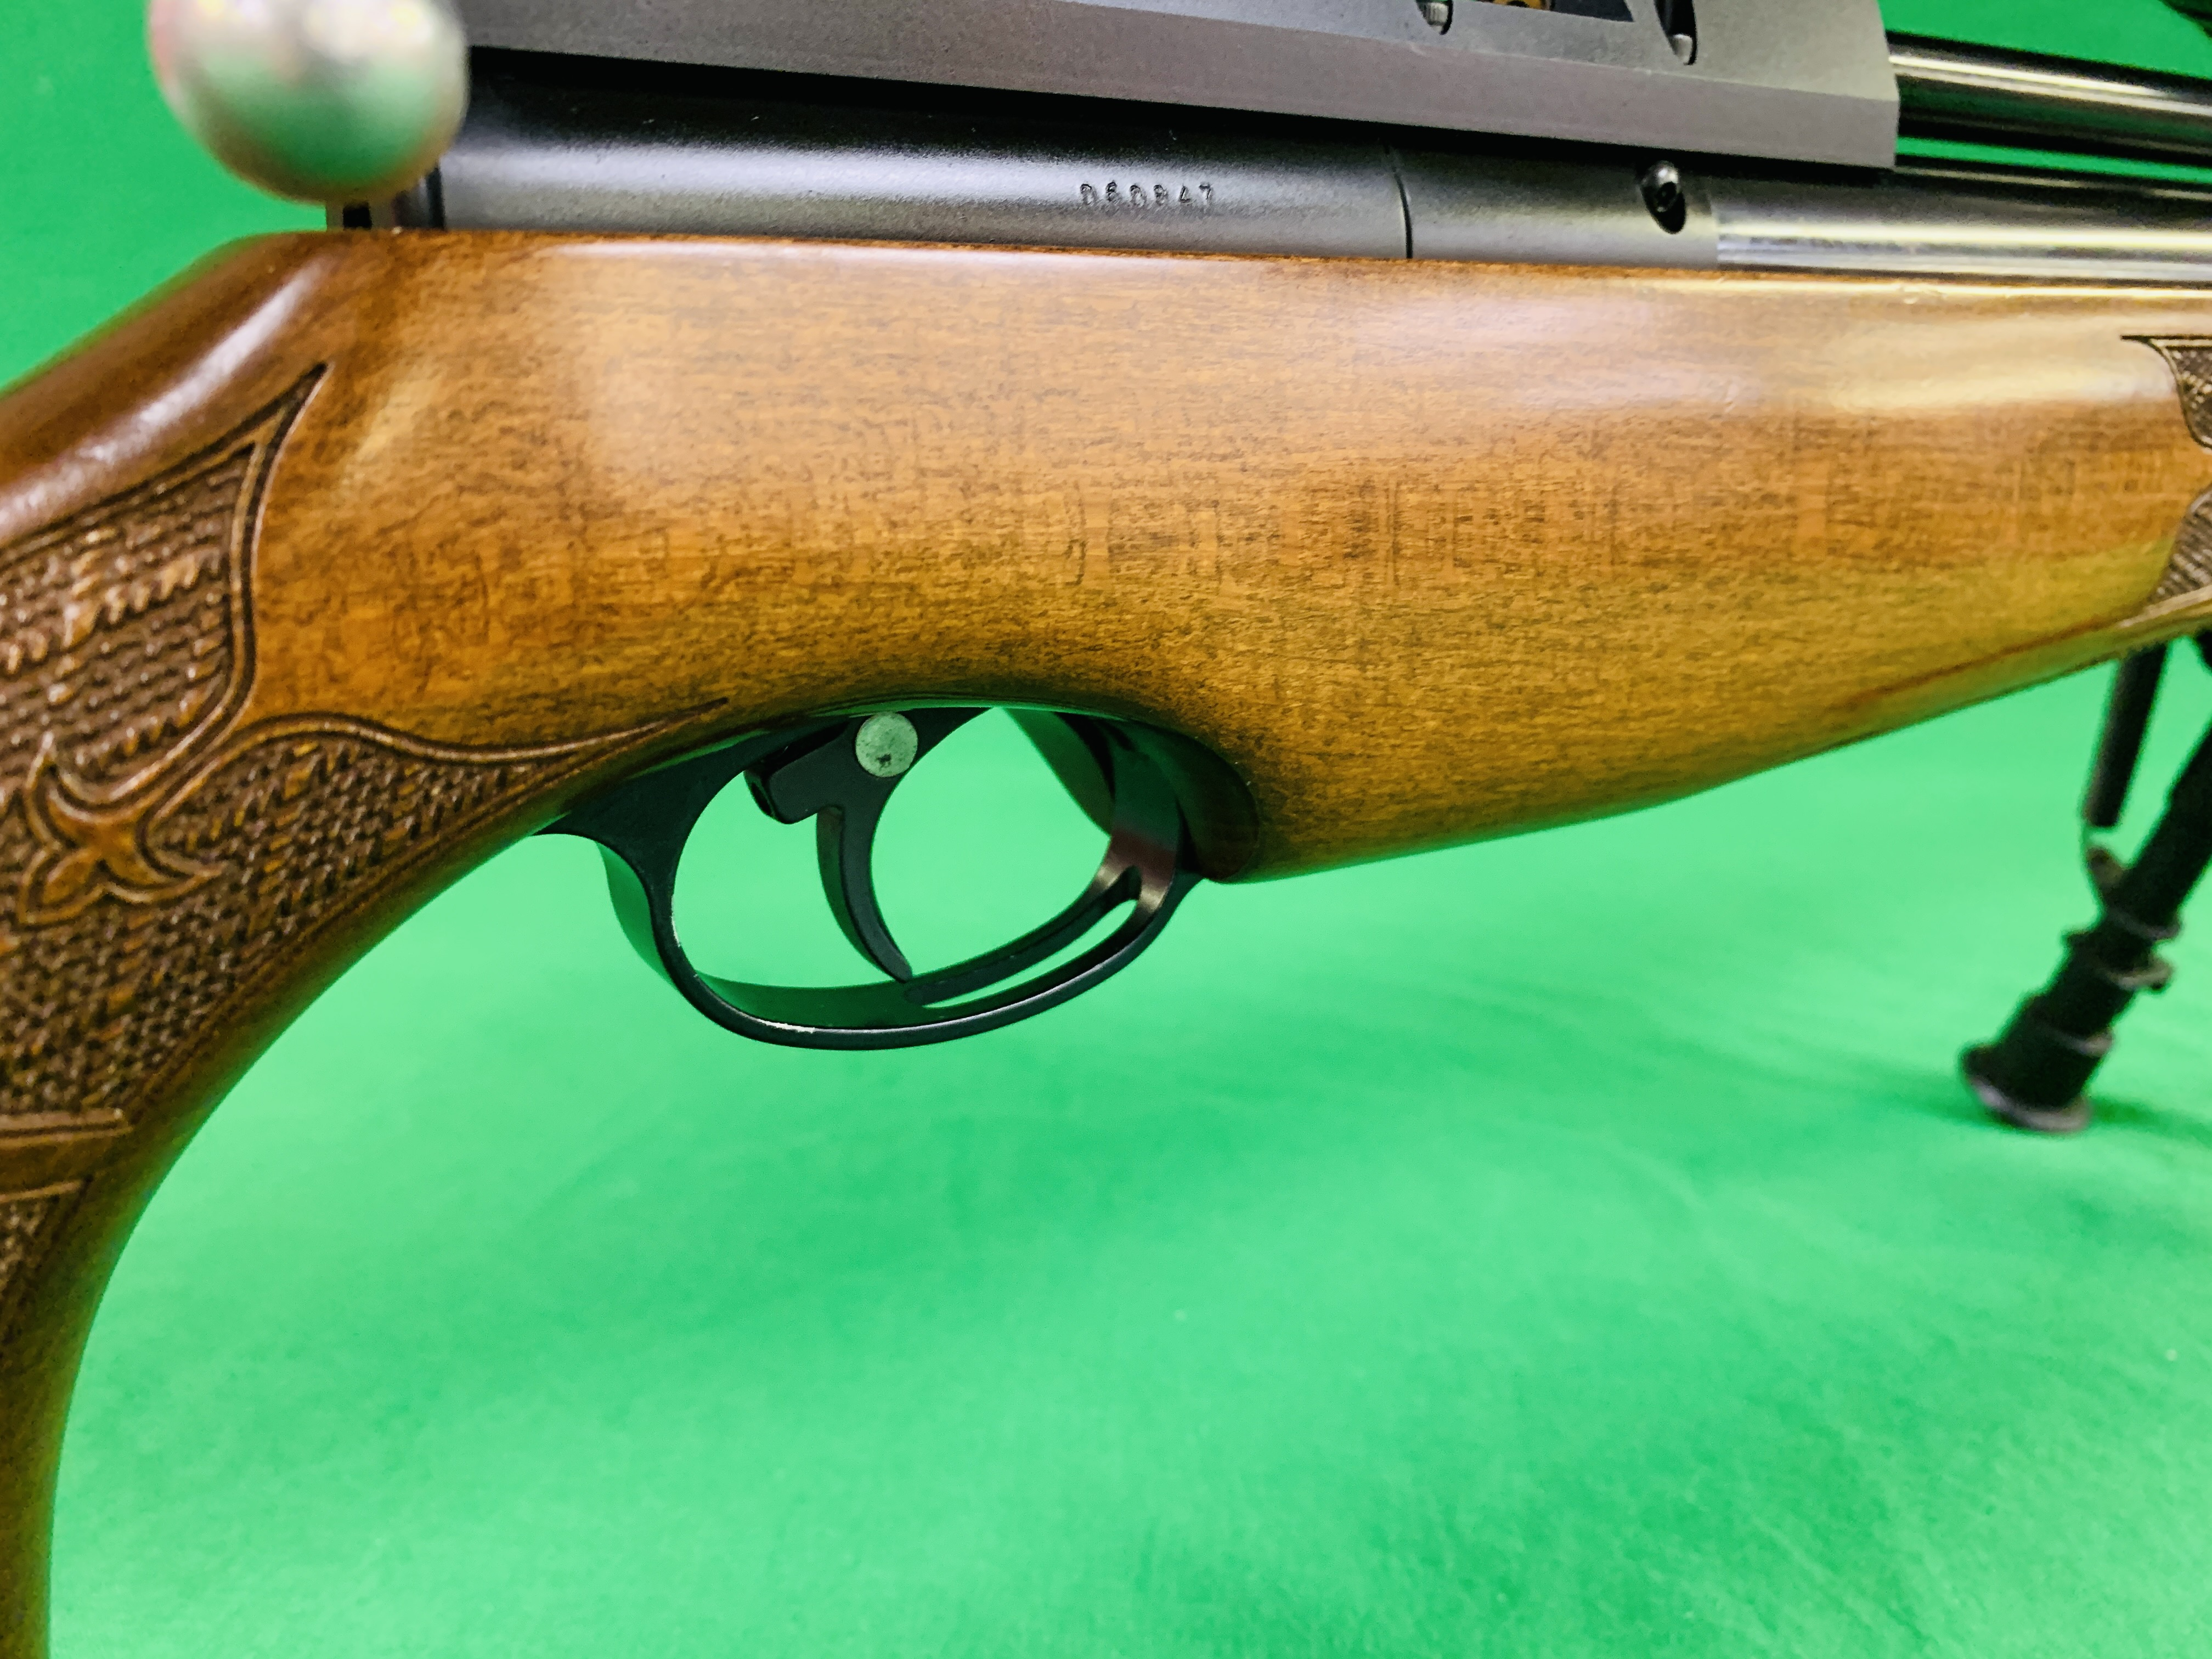 AIR ARMS S400 CLASSIC .177 BOLT ACTION PCP AIR RIFLE FITTED WITH BONUS 6. - Image 12 of 17